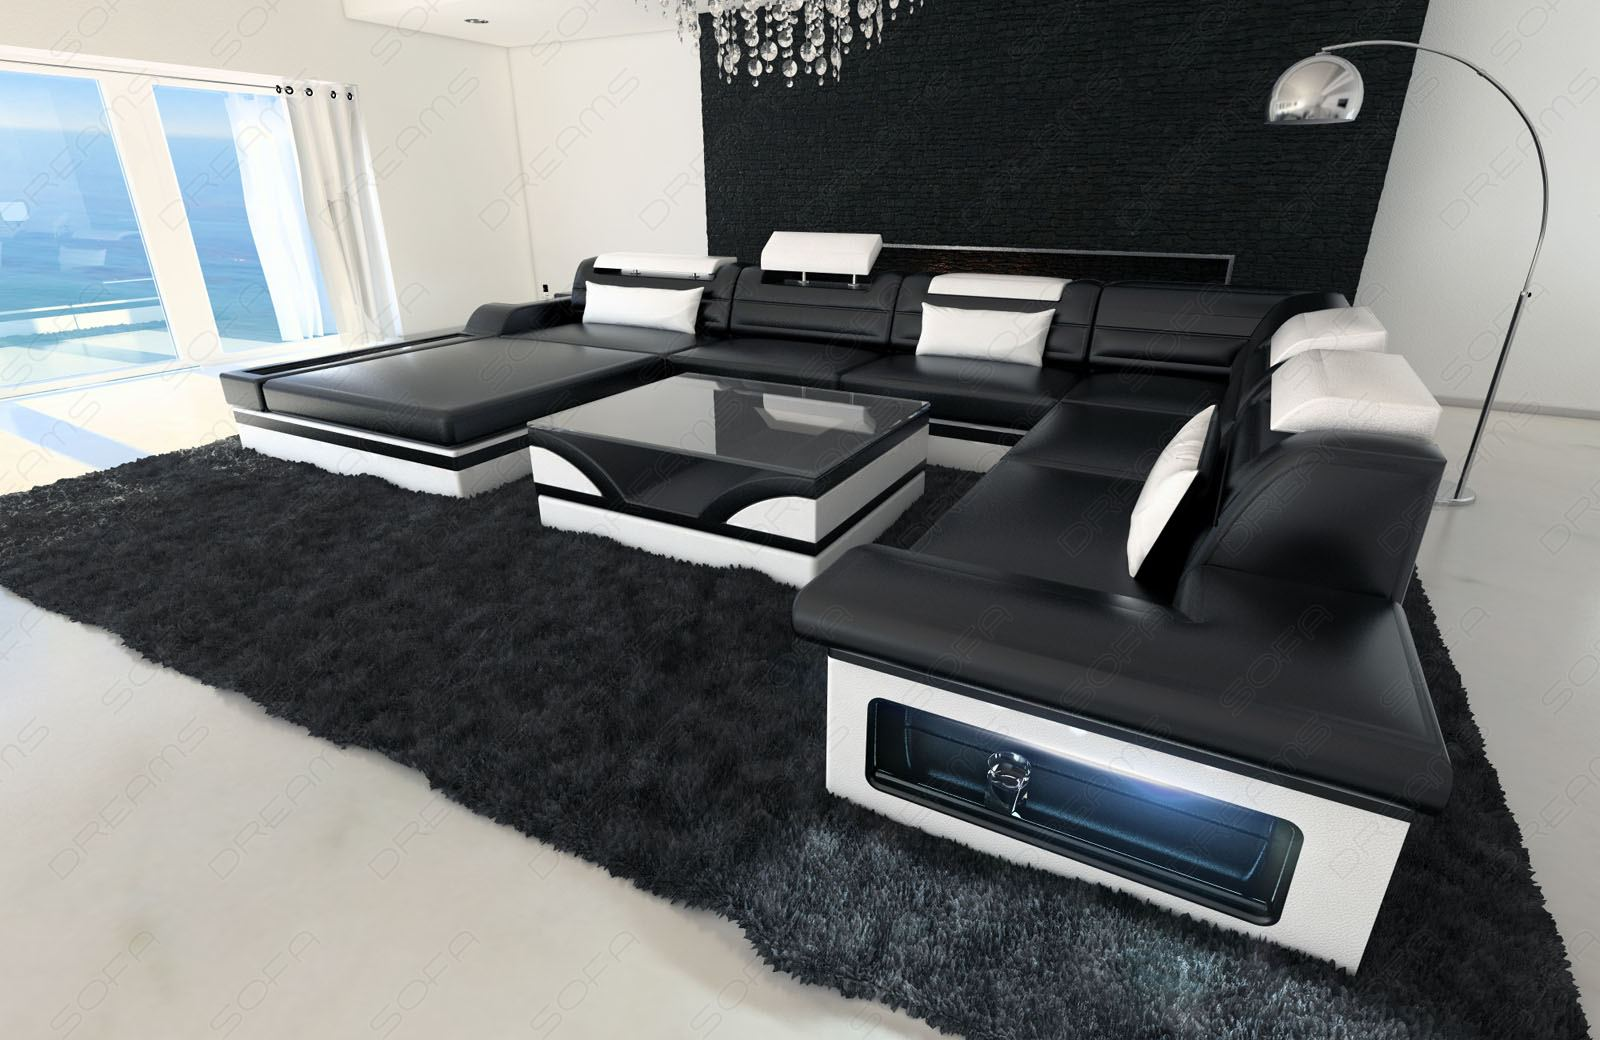 design sectional sofa mezzo xxl with led lights black. Black Bedroom Furniture Sets. Home Design Ideas